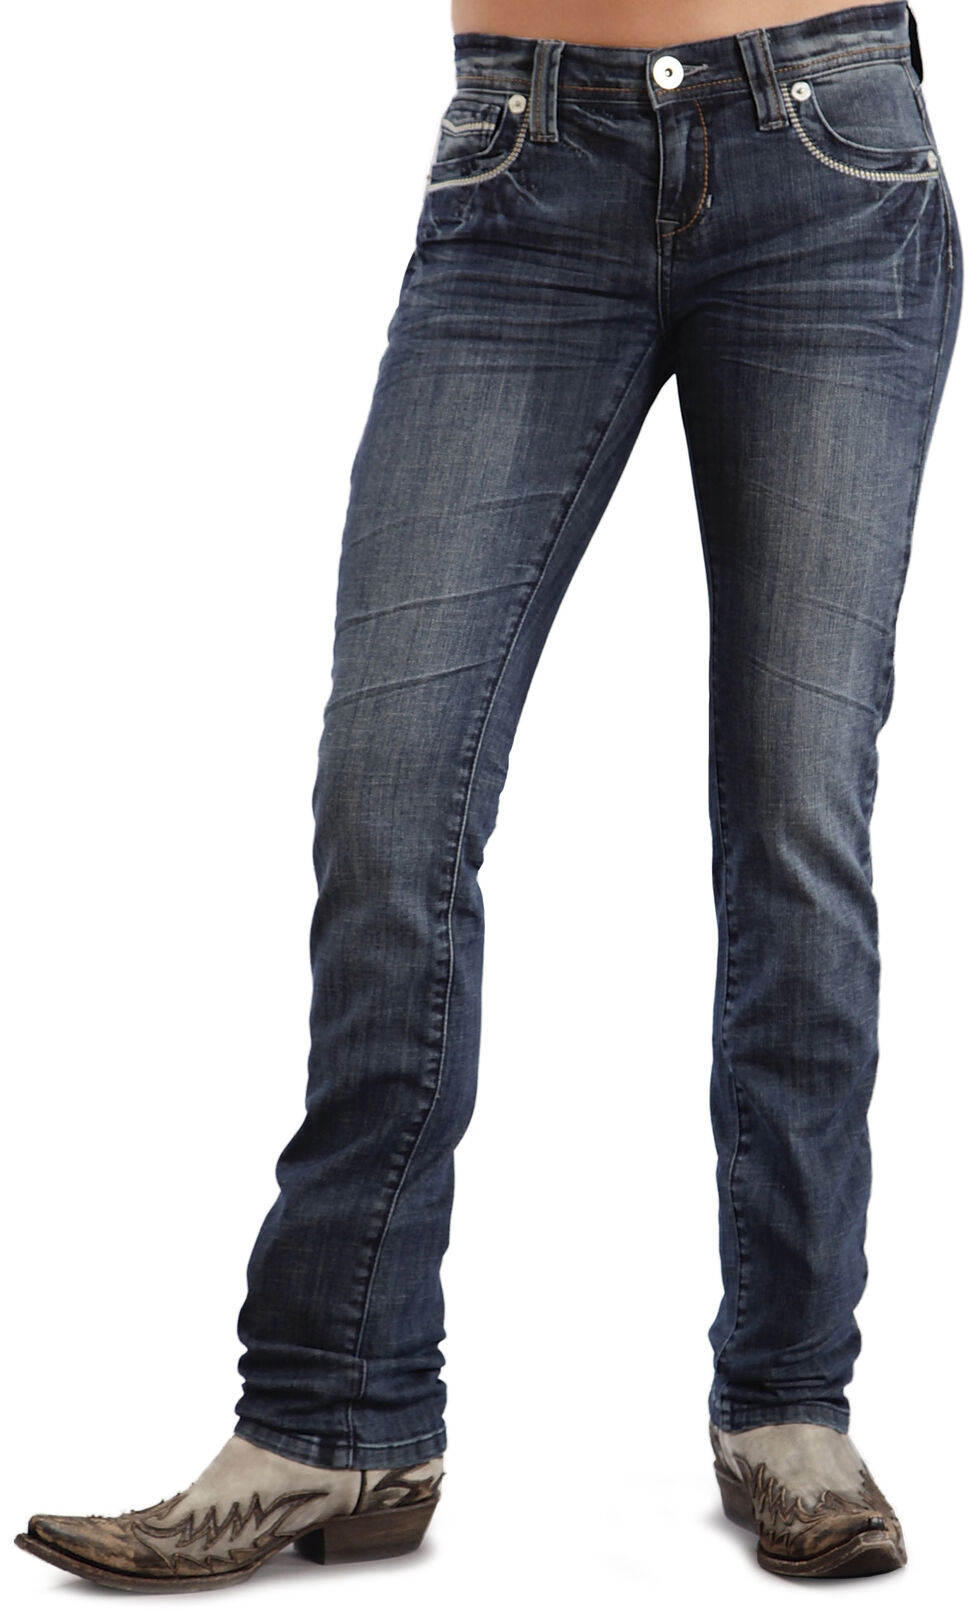 Stetson Women's Stovepipe 541 Fit Embroidered Skinny Jeans, Denim, hi-res